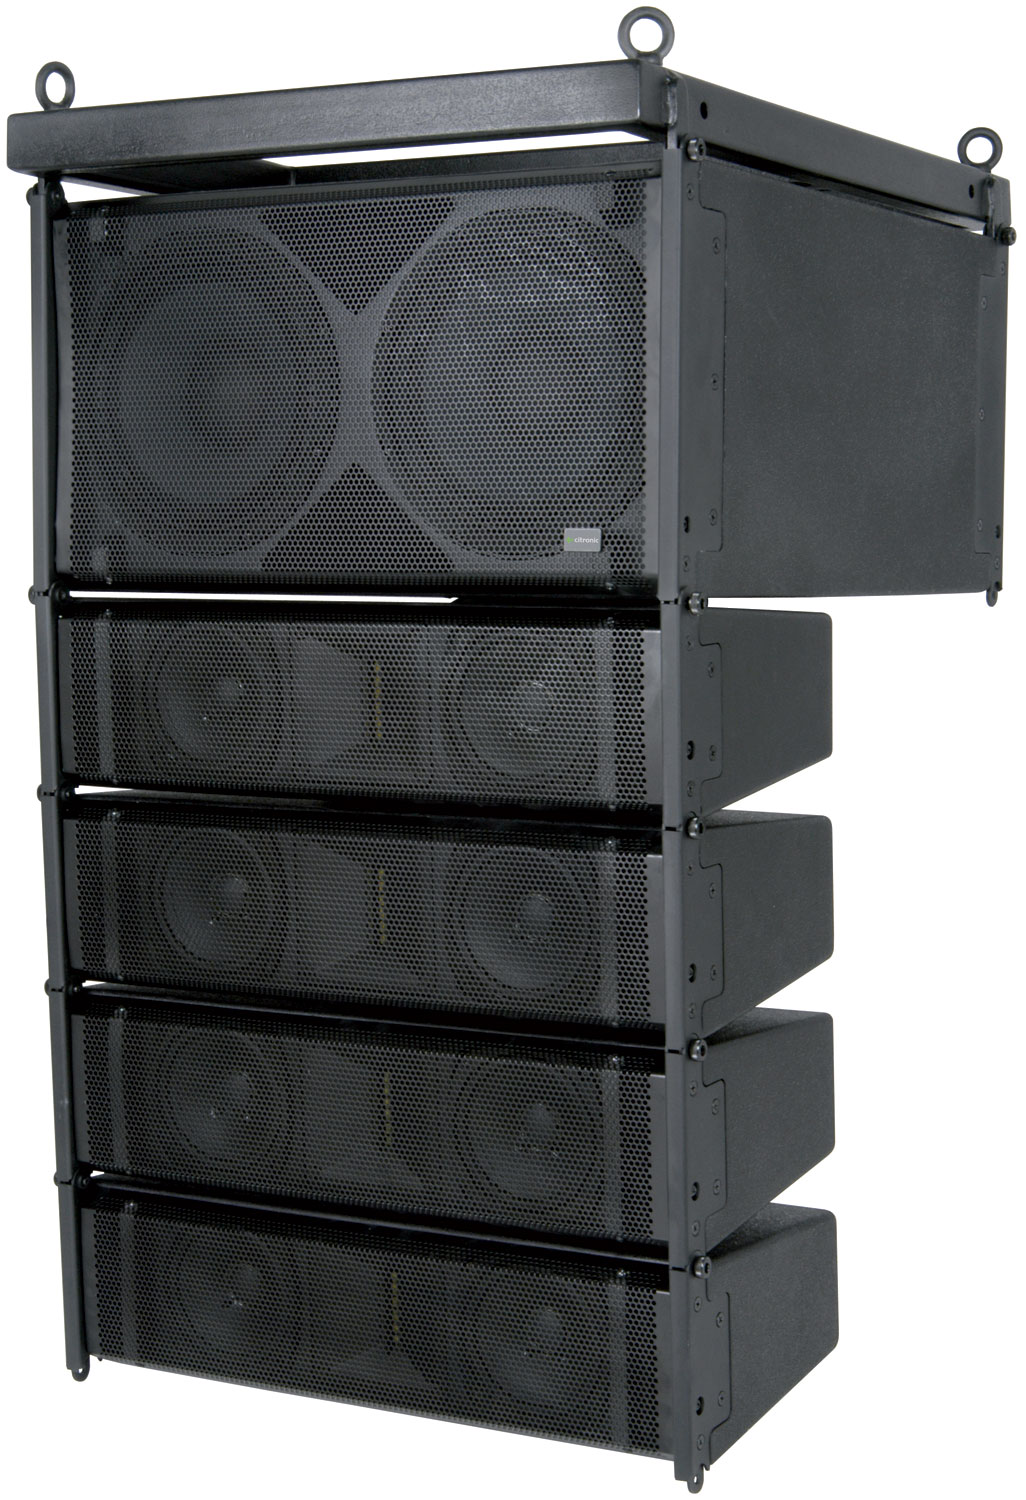 CLA-300 Active Line Array Speaker System, 300W + 300W, Black